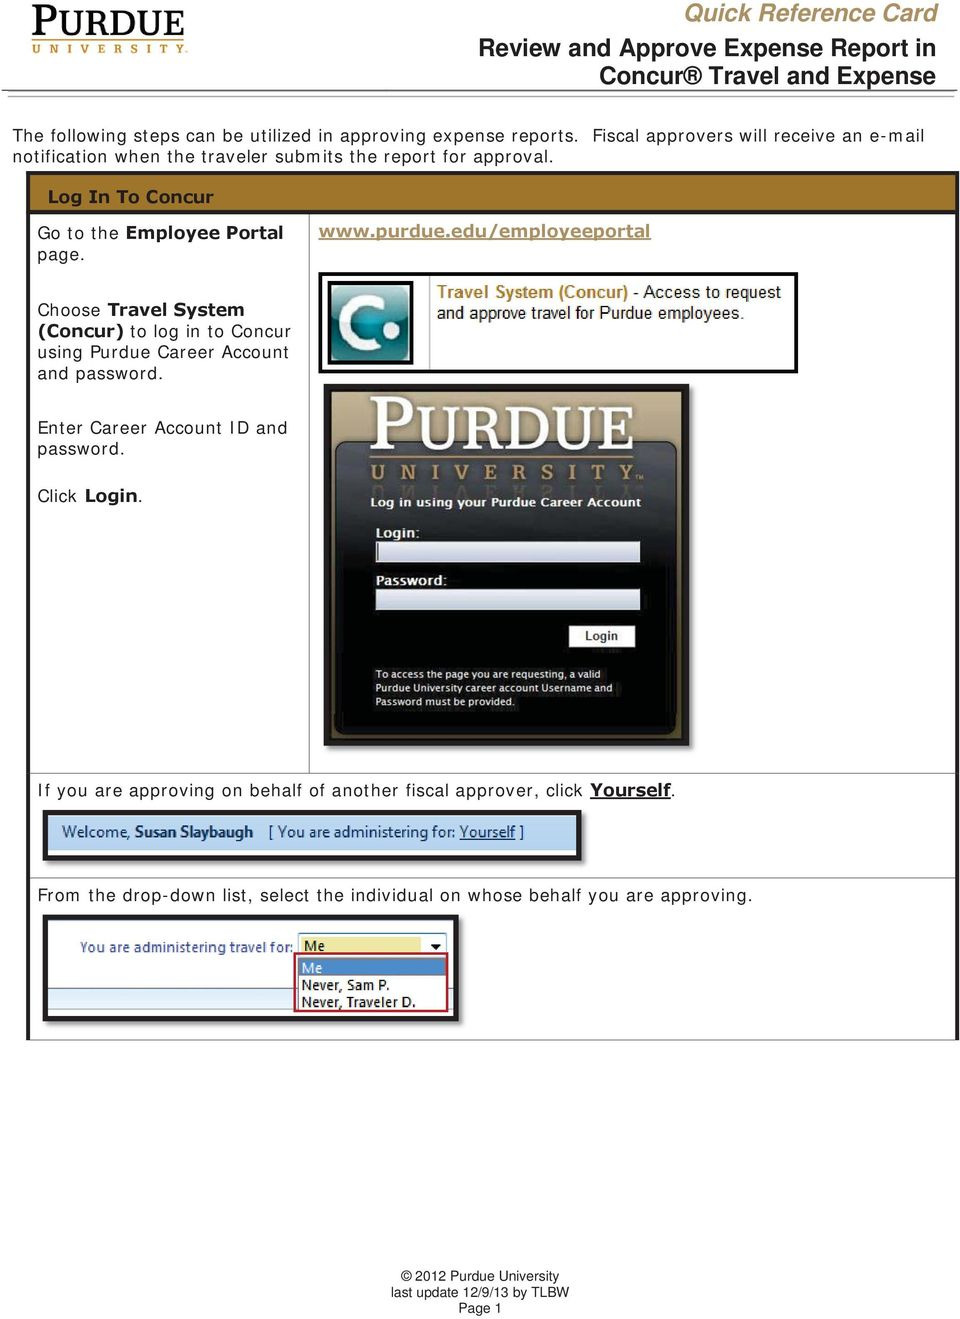 Log In To Concur Go to the Employee Portal page. www.purdue.